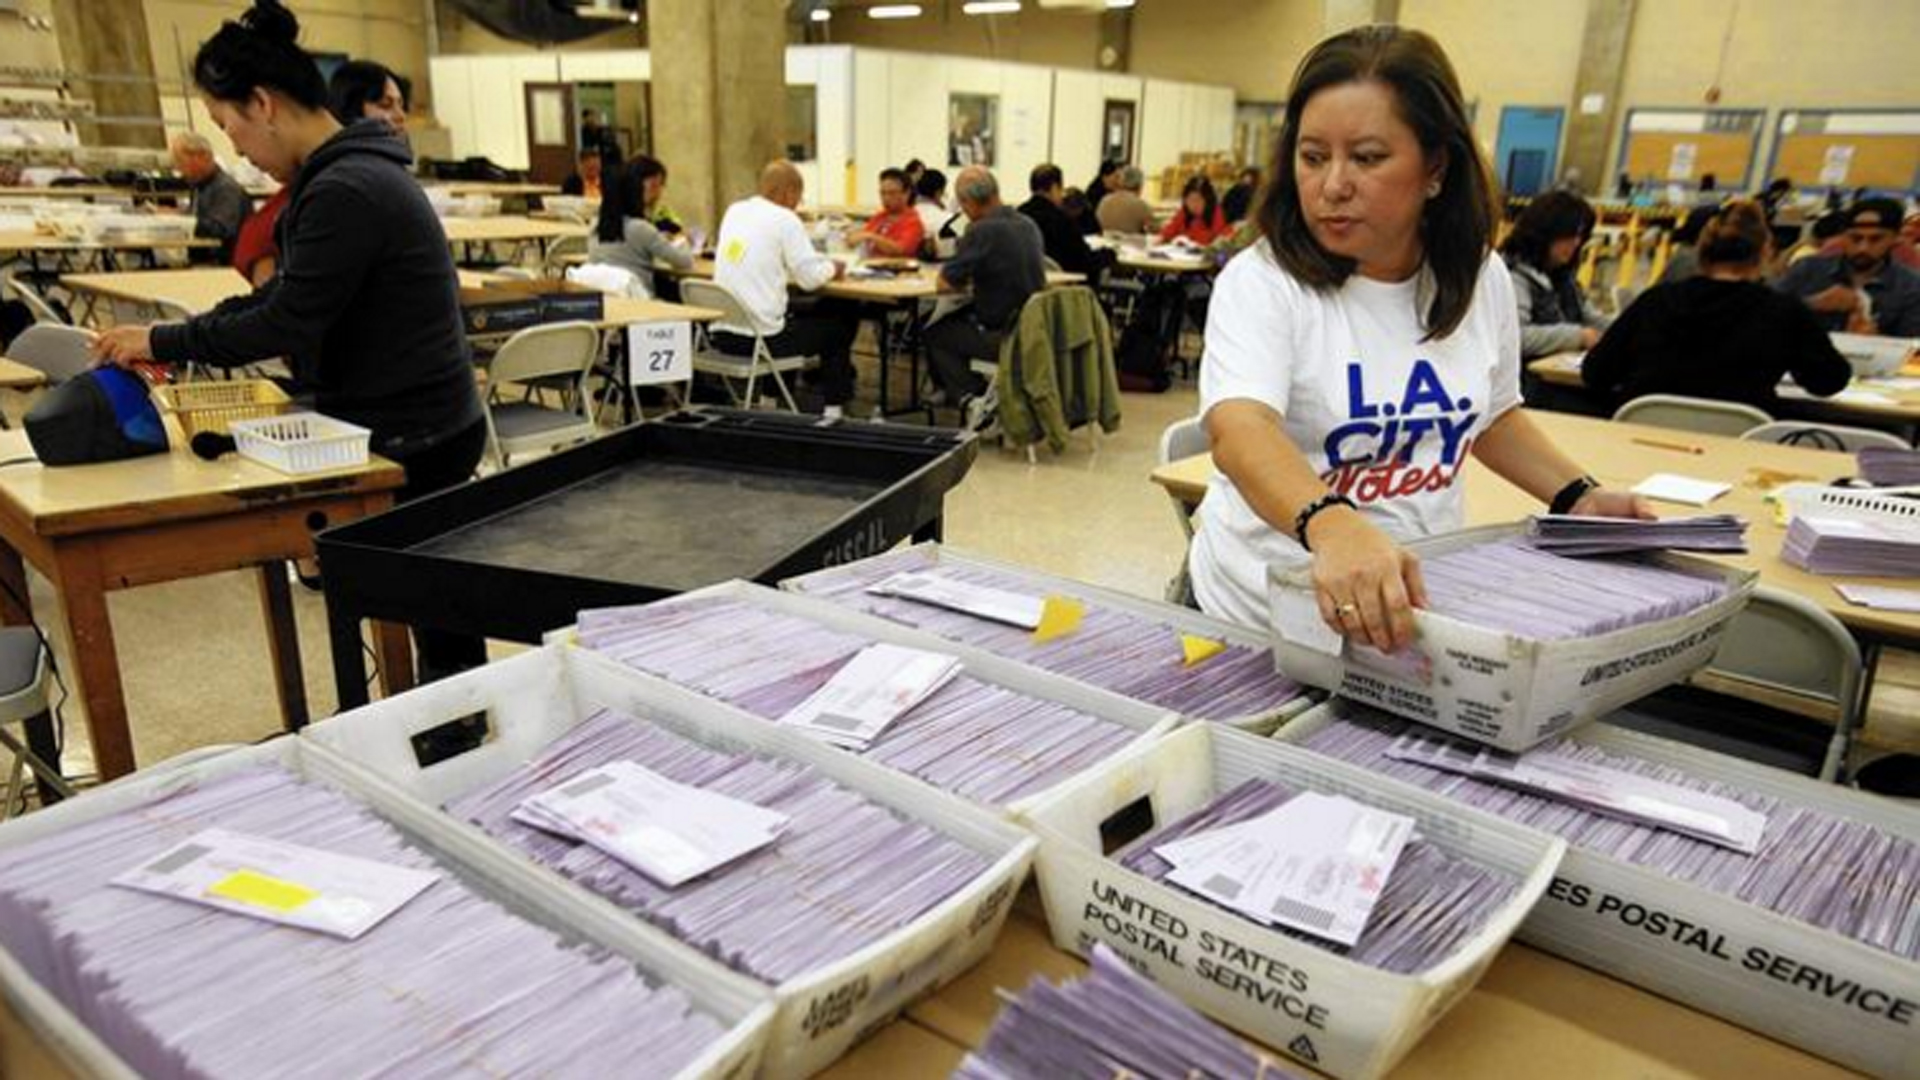 L.A. officials sort uncounted ballots from the Los Angeles primary election in 2015. (Credit: Genaro Molina / Los Angeles Times)